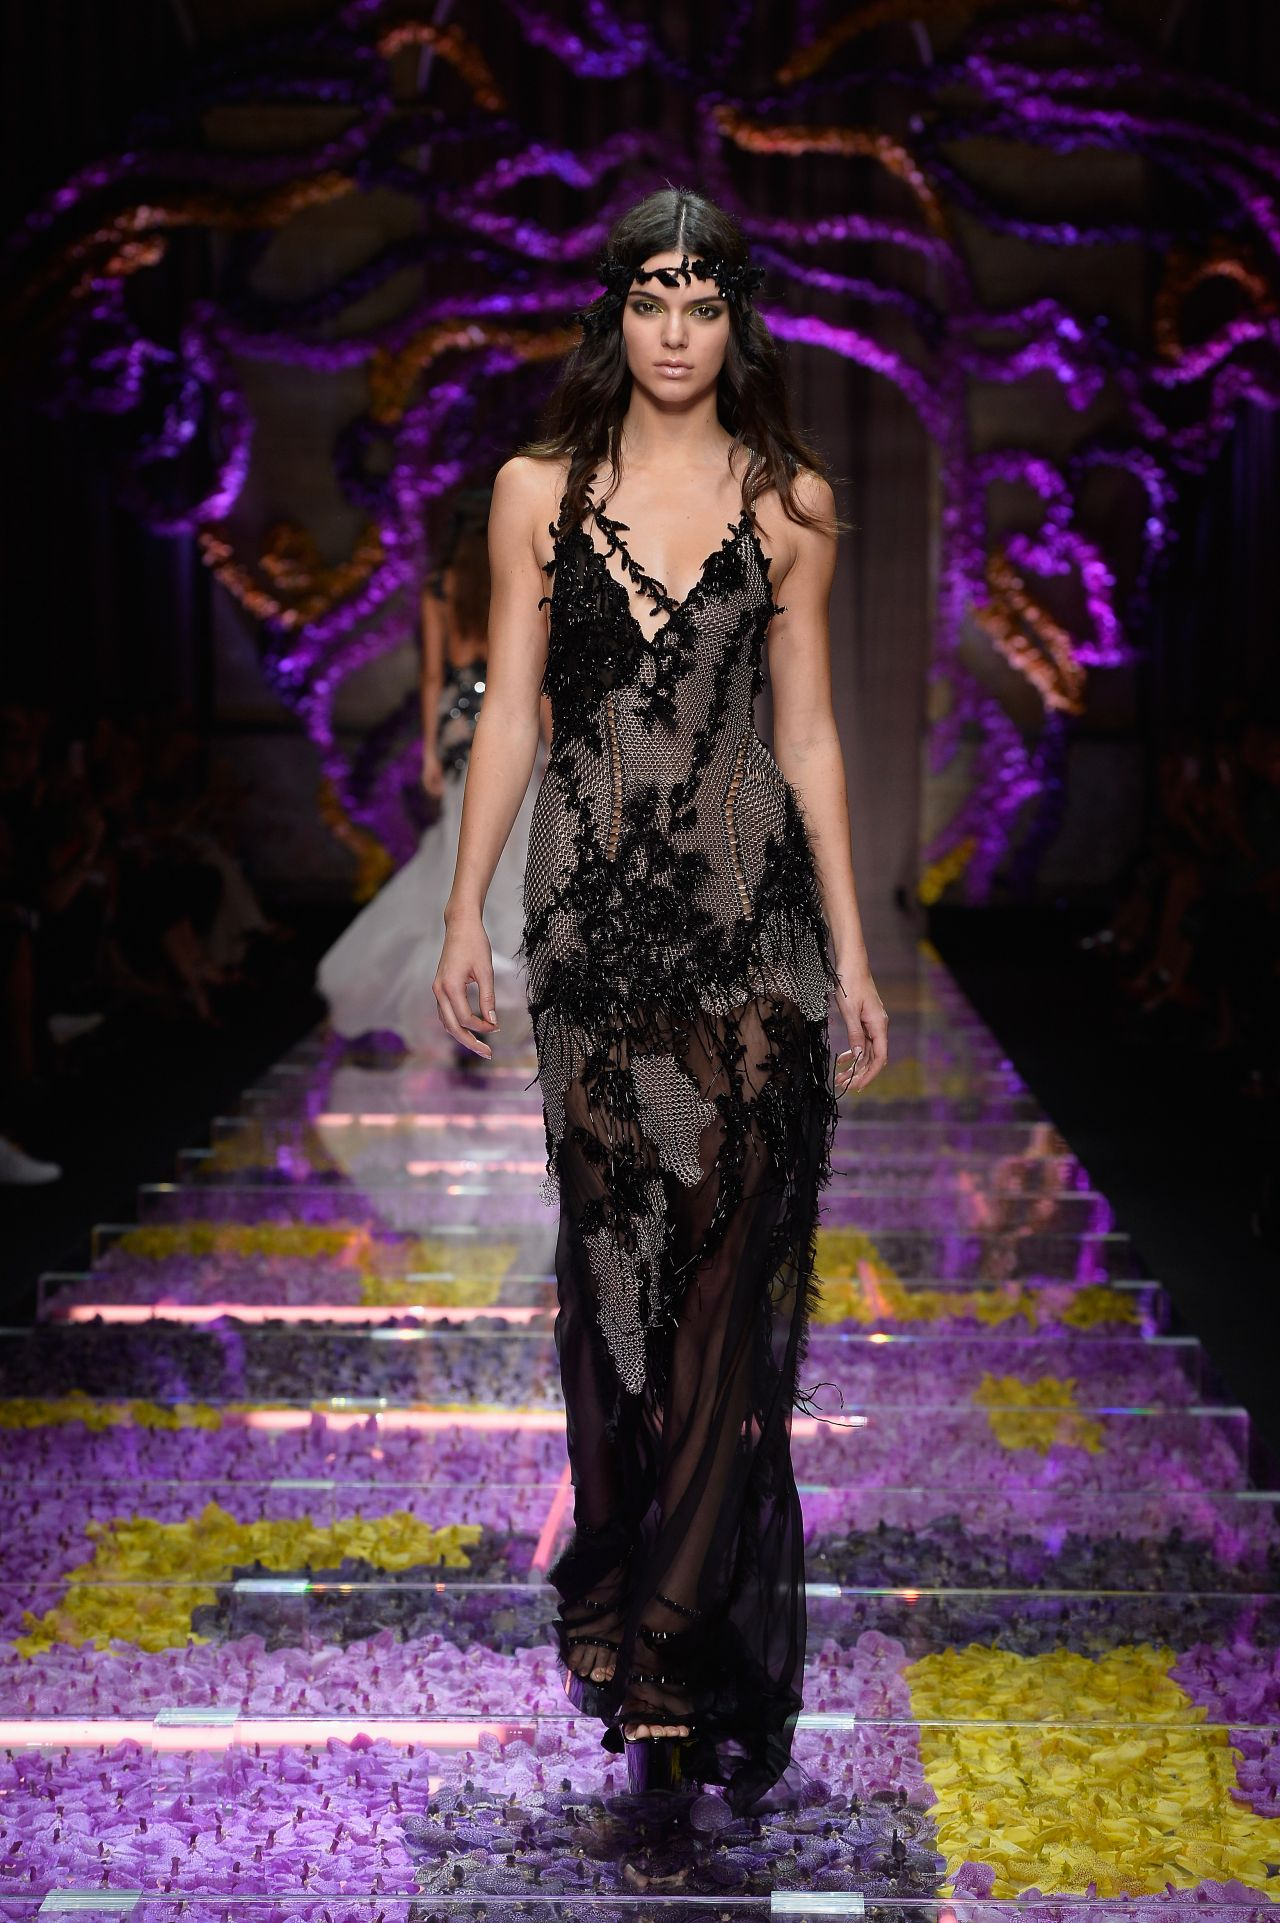 kendall jenner atelier versace show paris fashion week